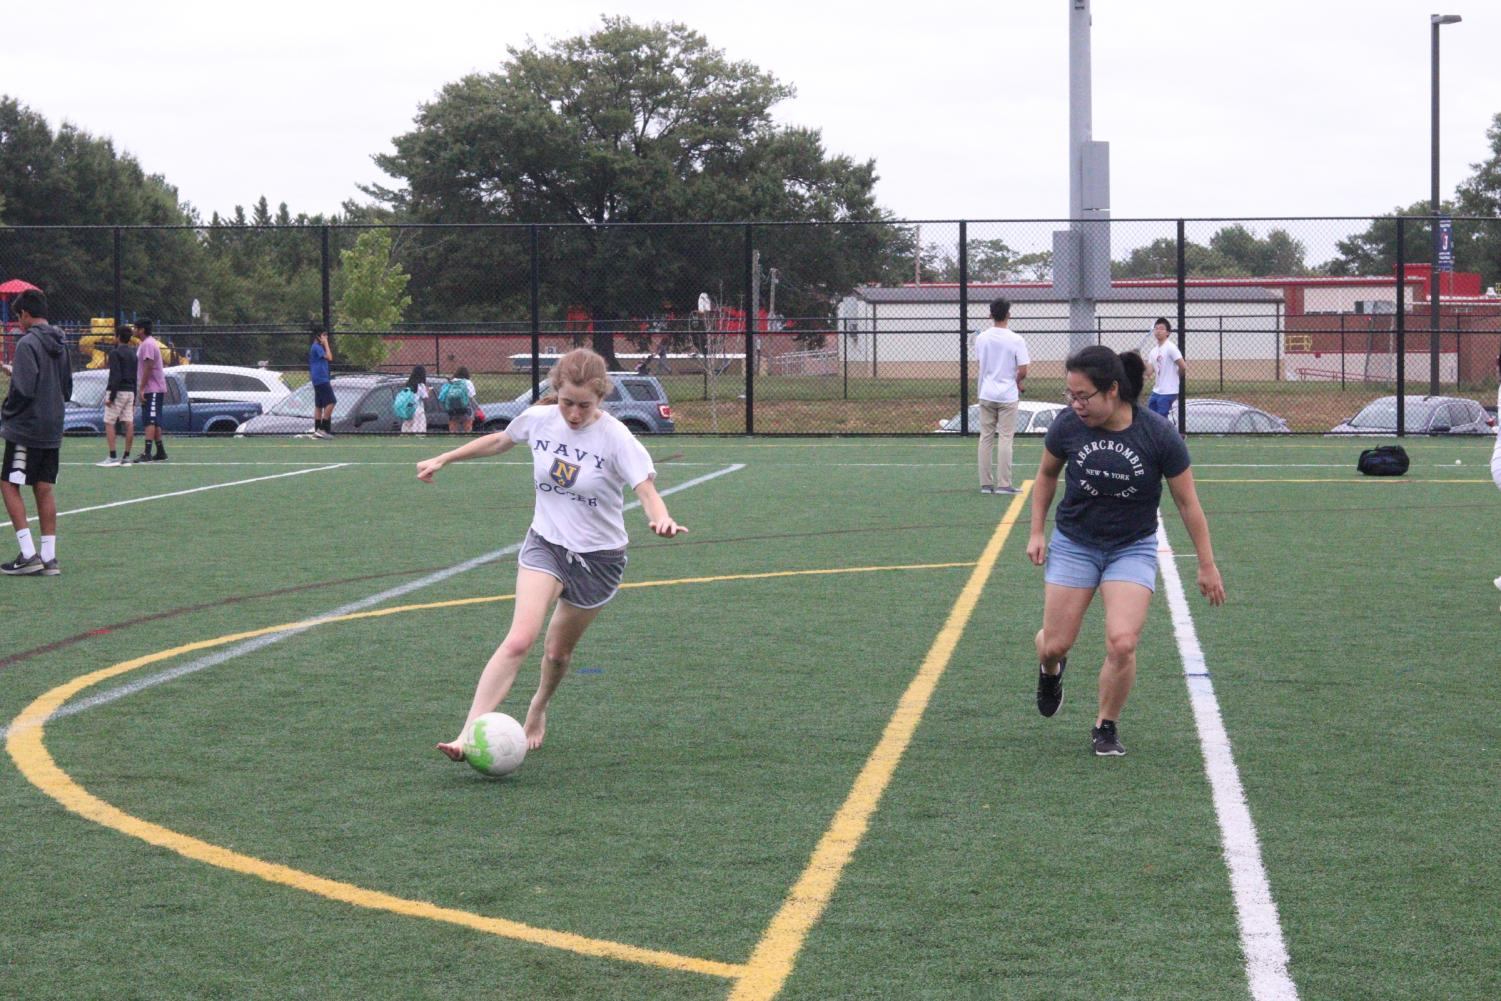 Shea Weingold kicks a soccer ball and Jenny Li waits for the ball to come her way. Students played soccer, volleyball, and tug of war during the Bash. Spending fun time with friends after a stressful week is one of the largest reasons students decided to attend the Bash.